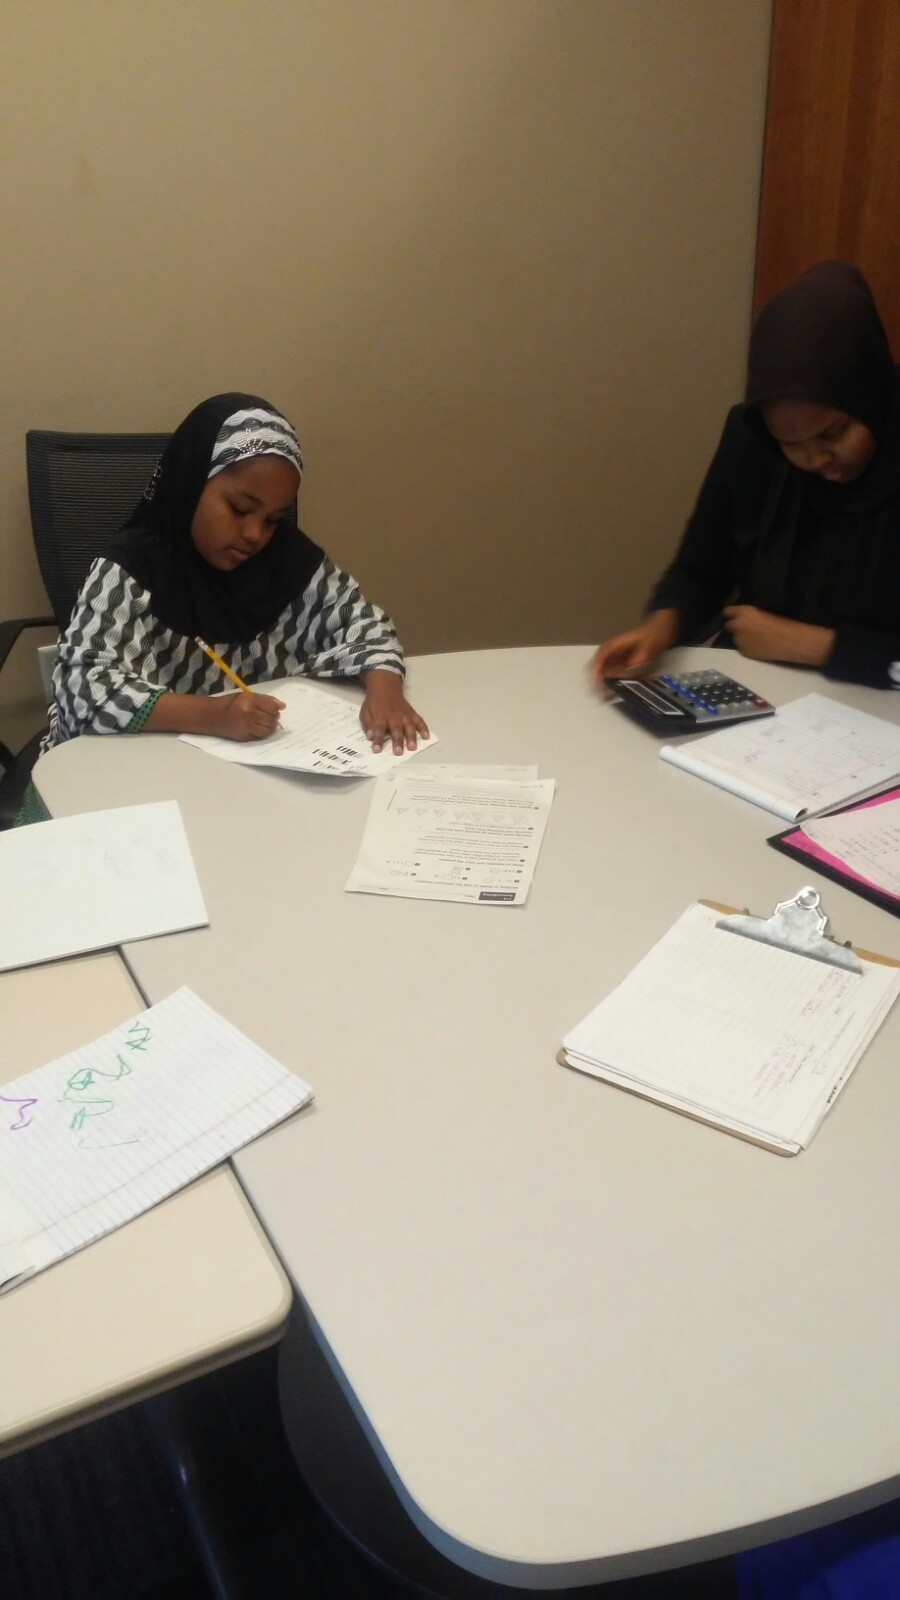 Riyana, left, works on homework, with tutor Rahma, right.